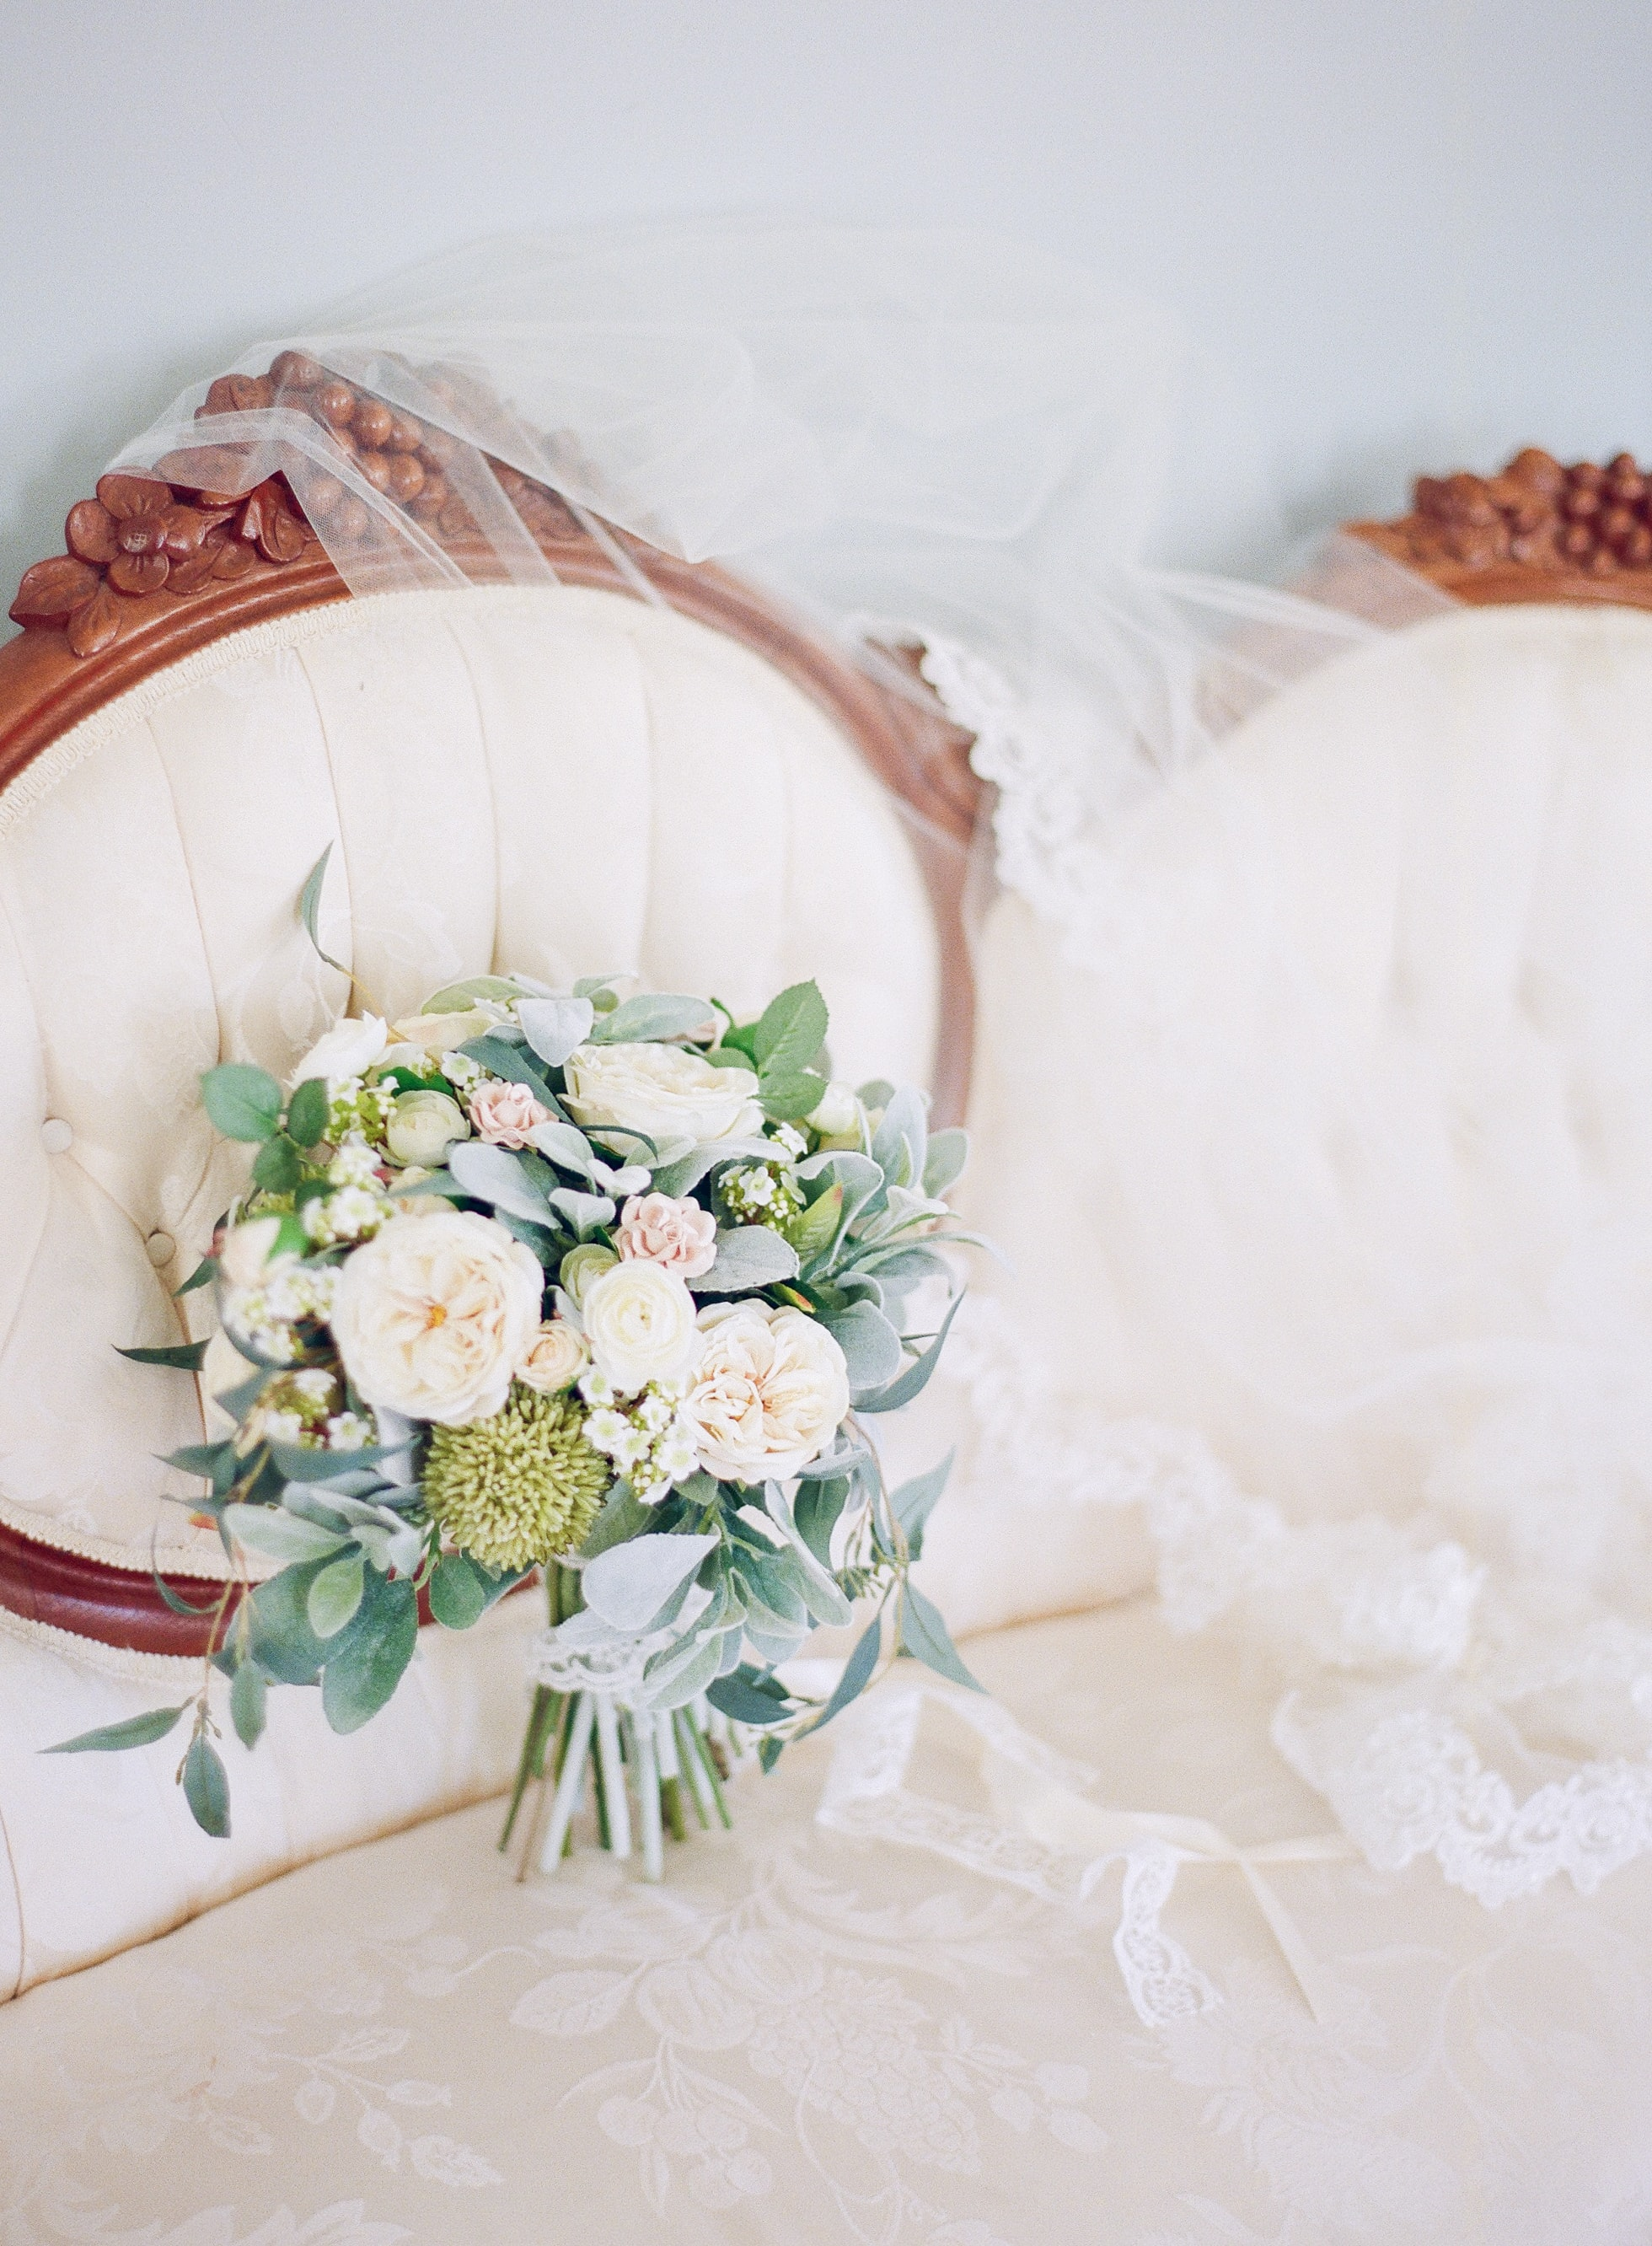 Detail shot of bridal bouquet and veil captured by Almond Leaf Studios for a wedding at Vesuvius Vineyards